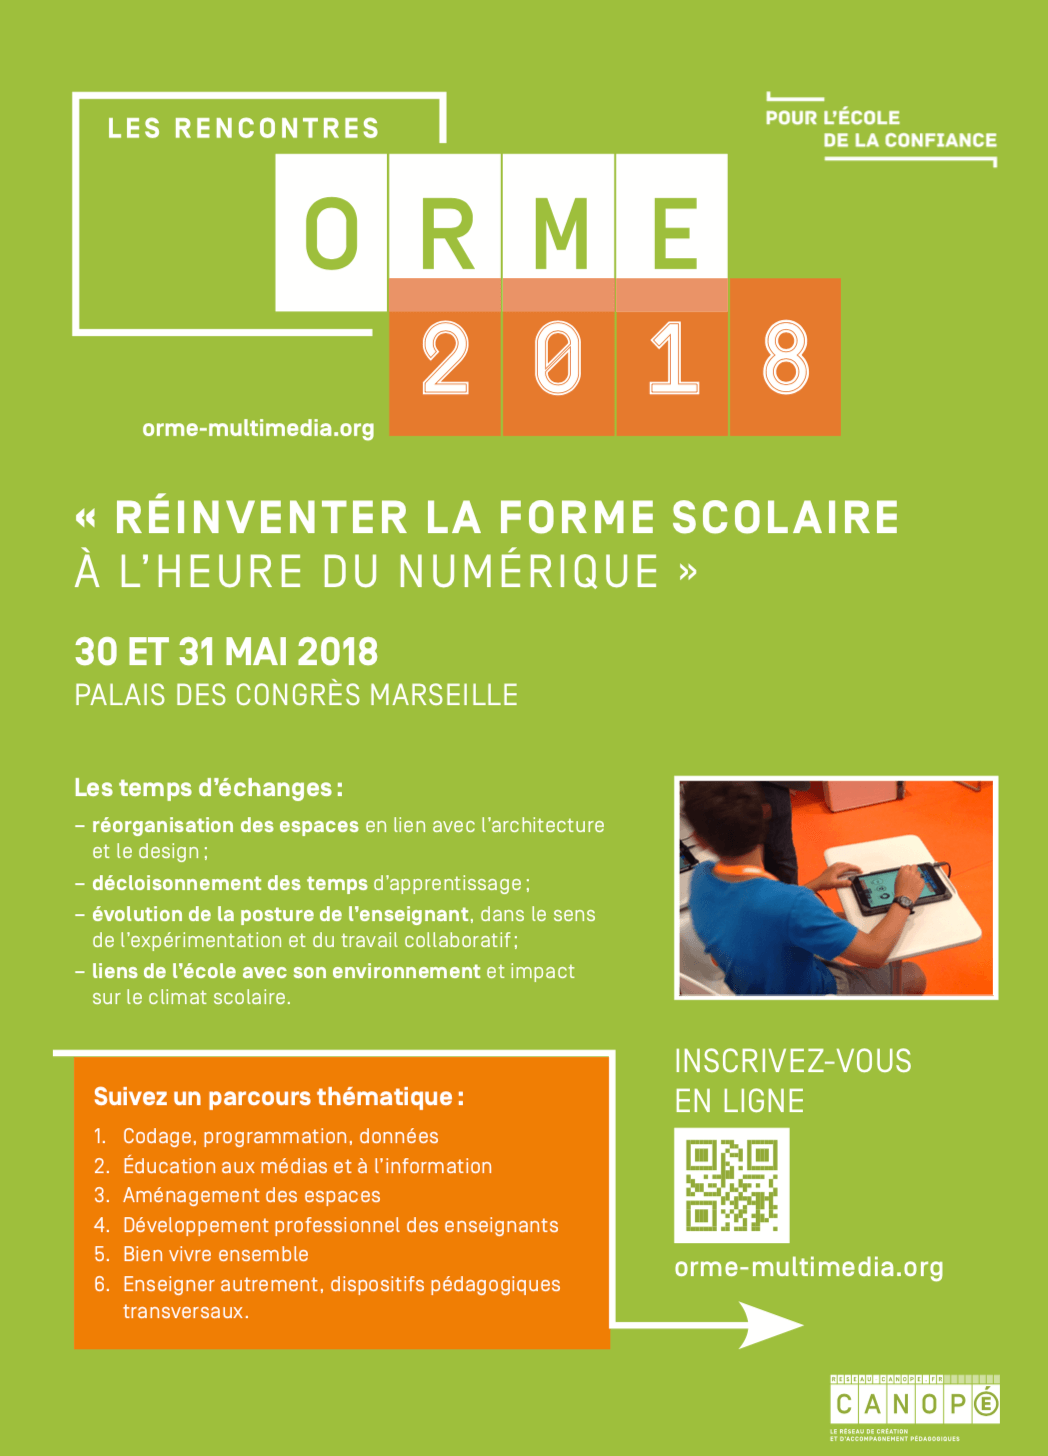 orme2018 affiche